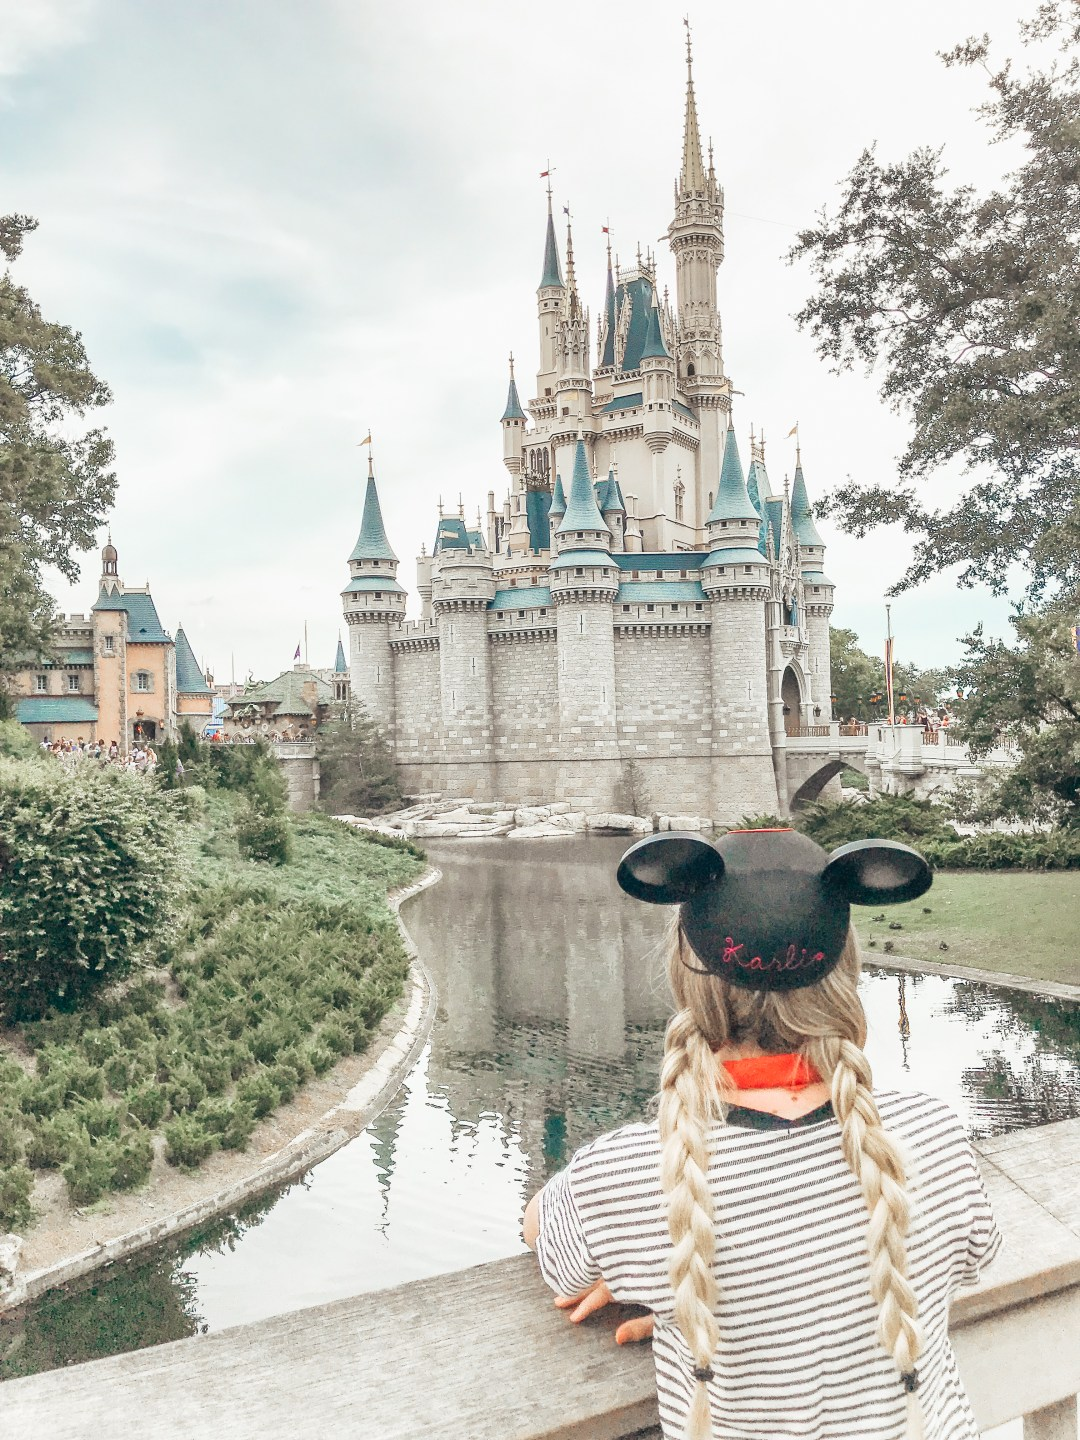 10 Things For Adults To Do in Walt Disney World